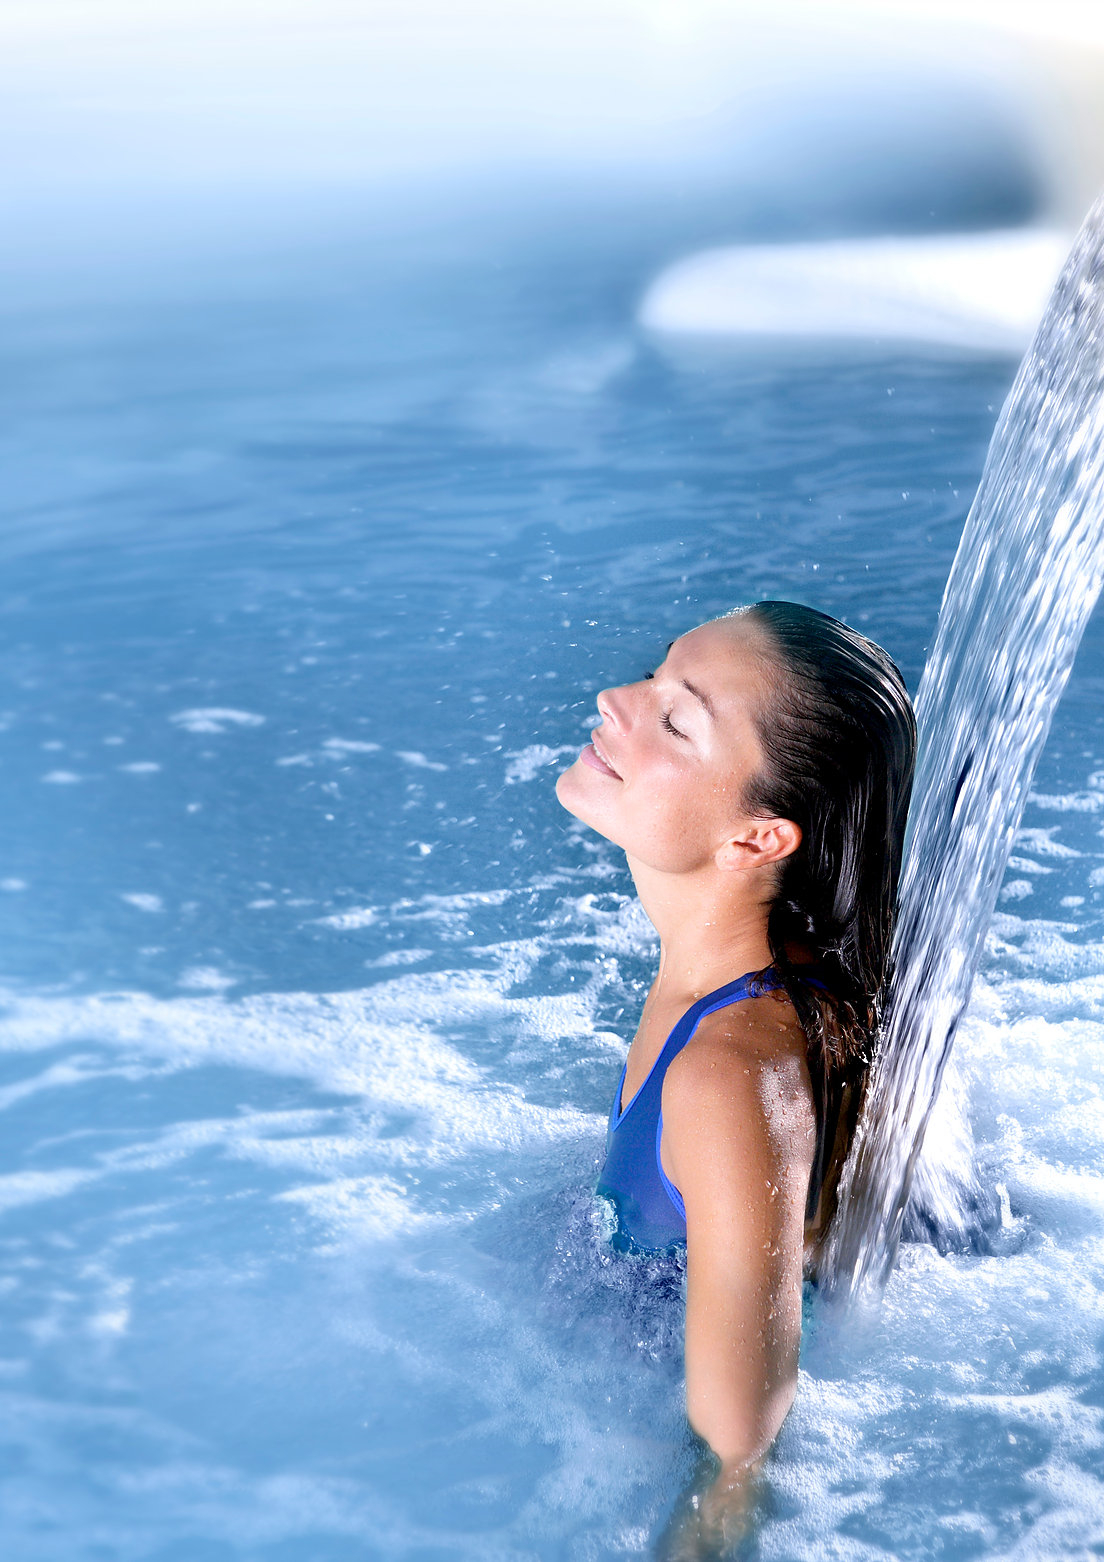 Wellness at the Spa located at 15340 Dallas Parkway, Suite 2220 Dallas, Texas 75248, Unit #27